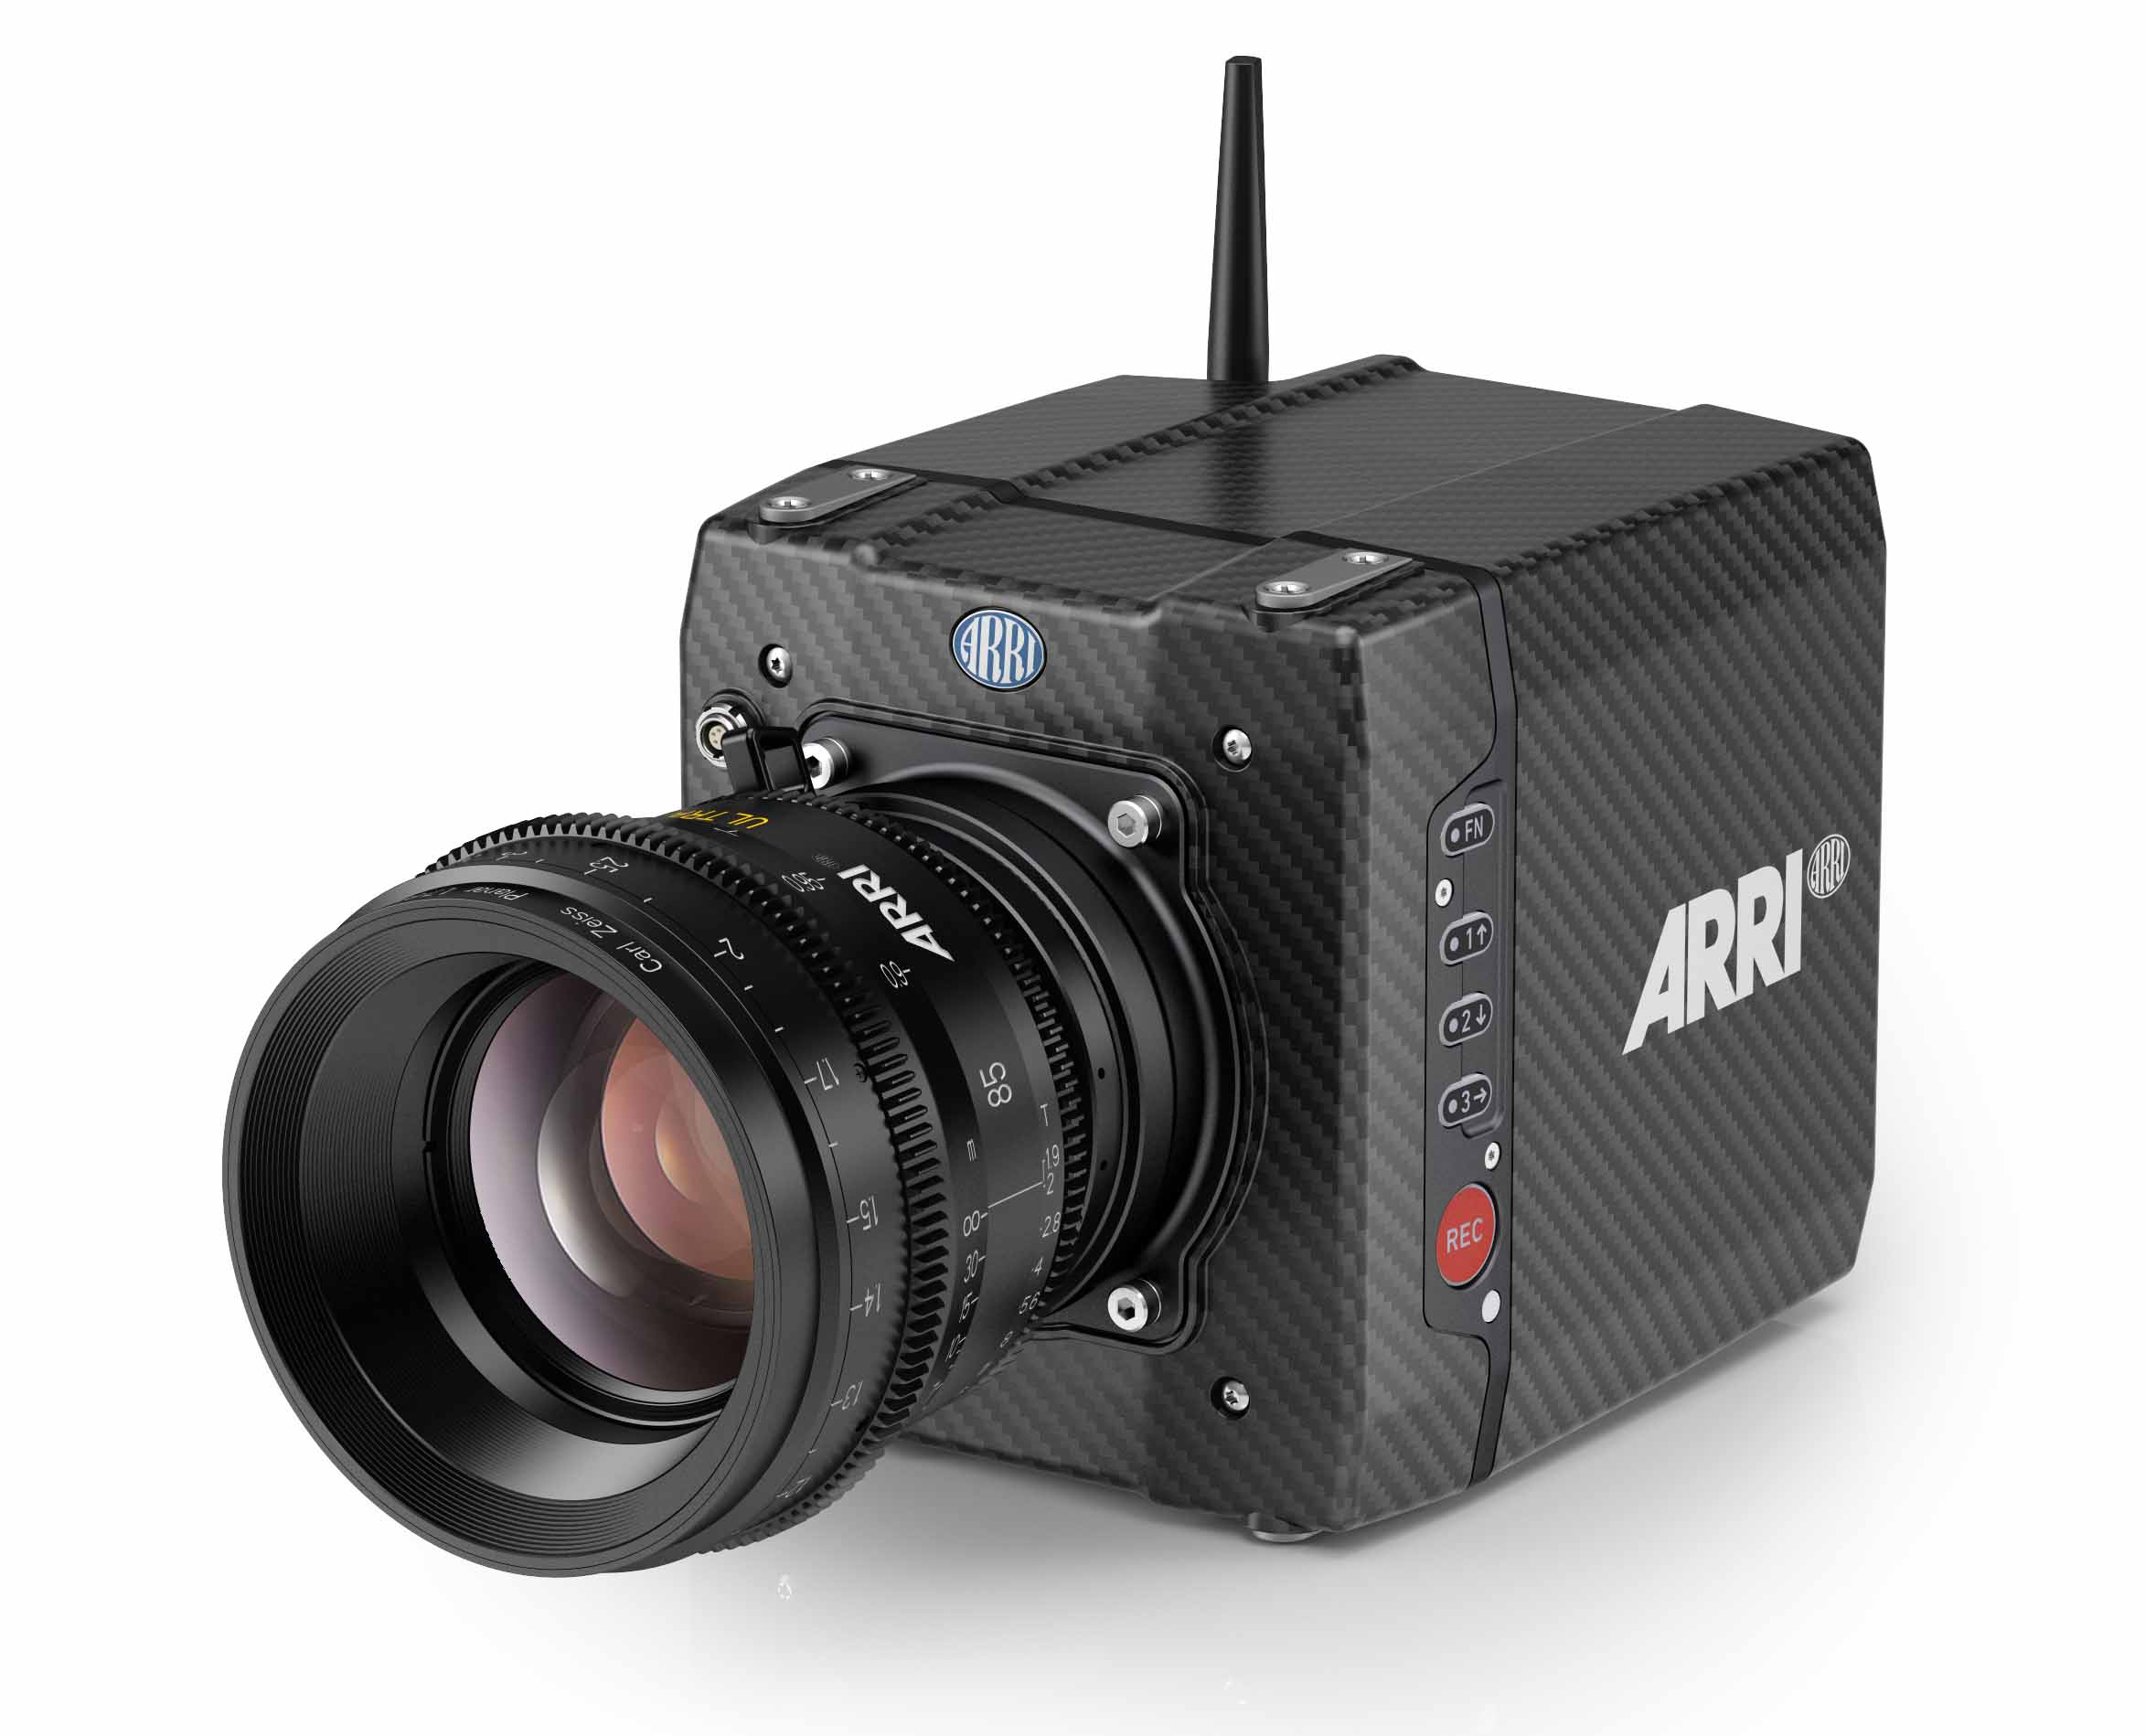 drone cameras with The Arri Announce The Alexa Mini on Camera Dans La Chatte furthermore Avi C3 A3o Jato Avi C3 B5es Viagens 309091 furthermore Drone Uranos moreover Plastics Repurposing likewise Intel Shows How Smart Cities Are Constantly  municating.